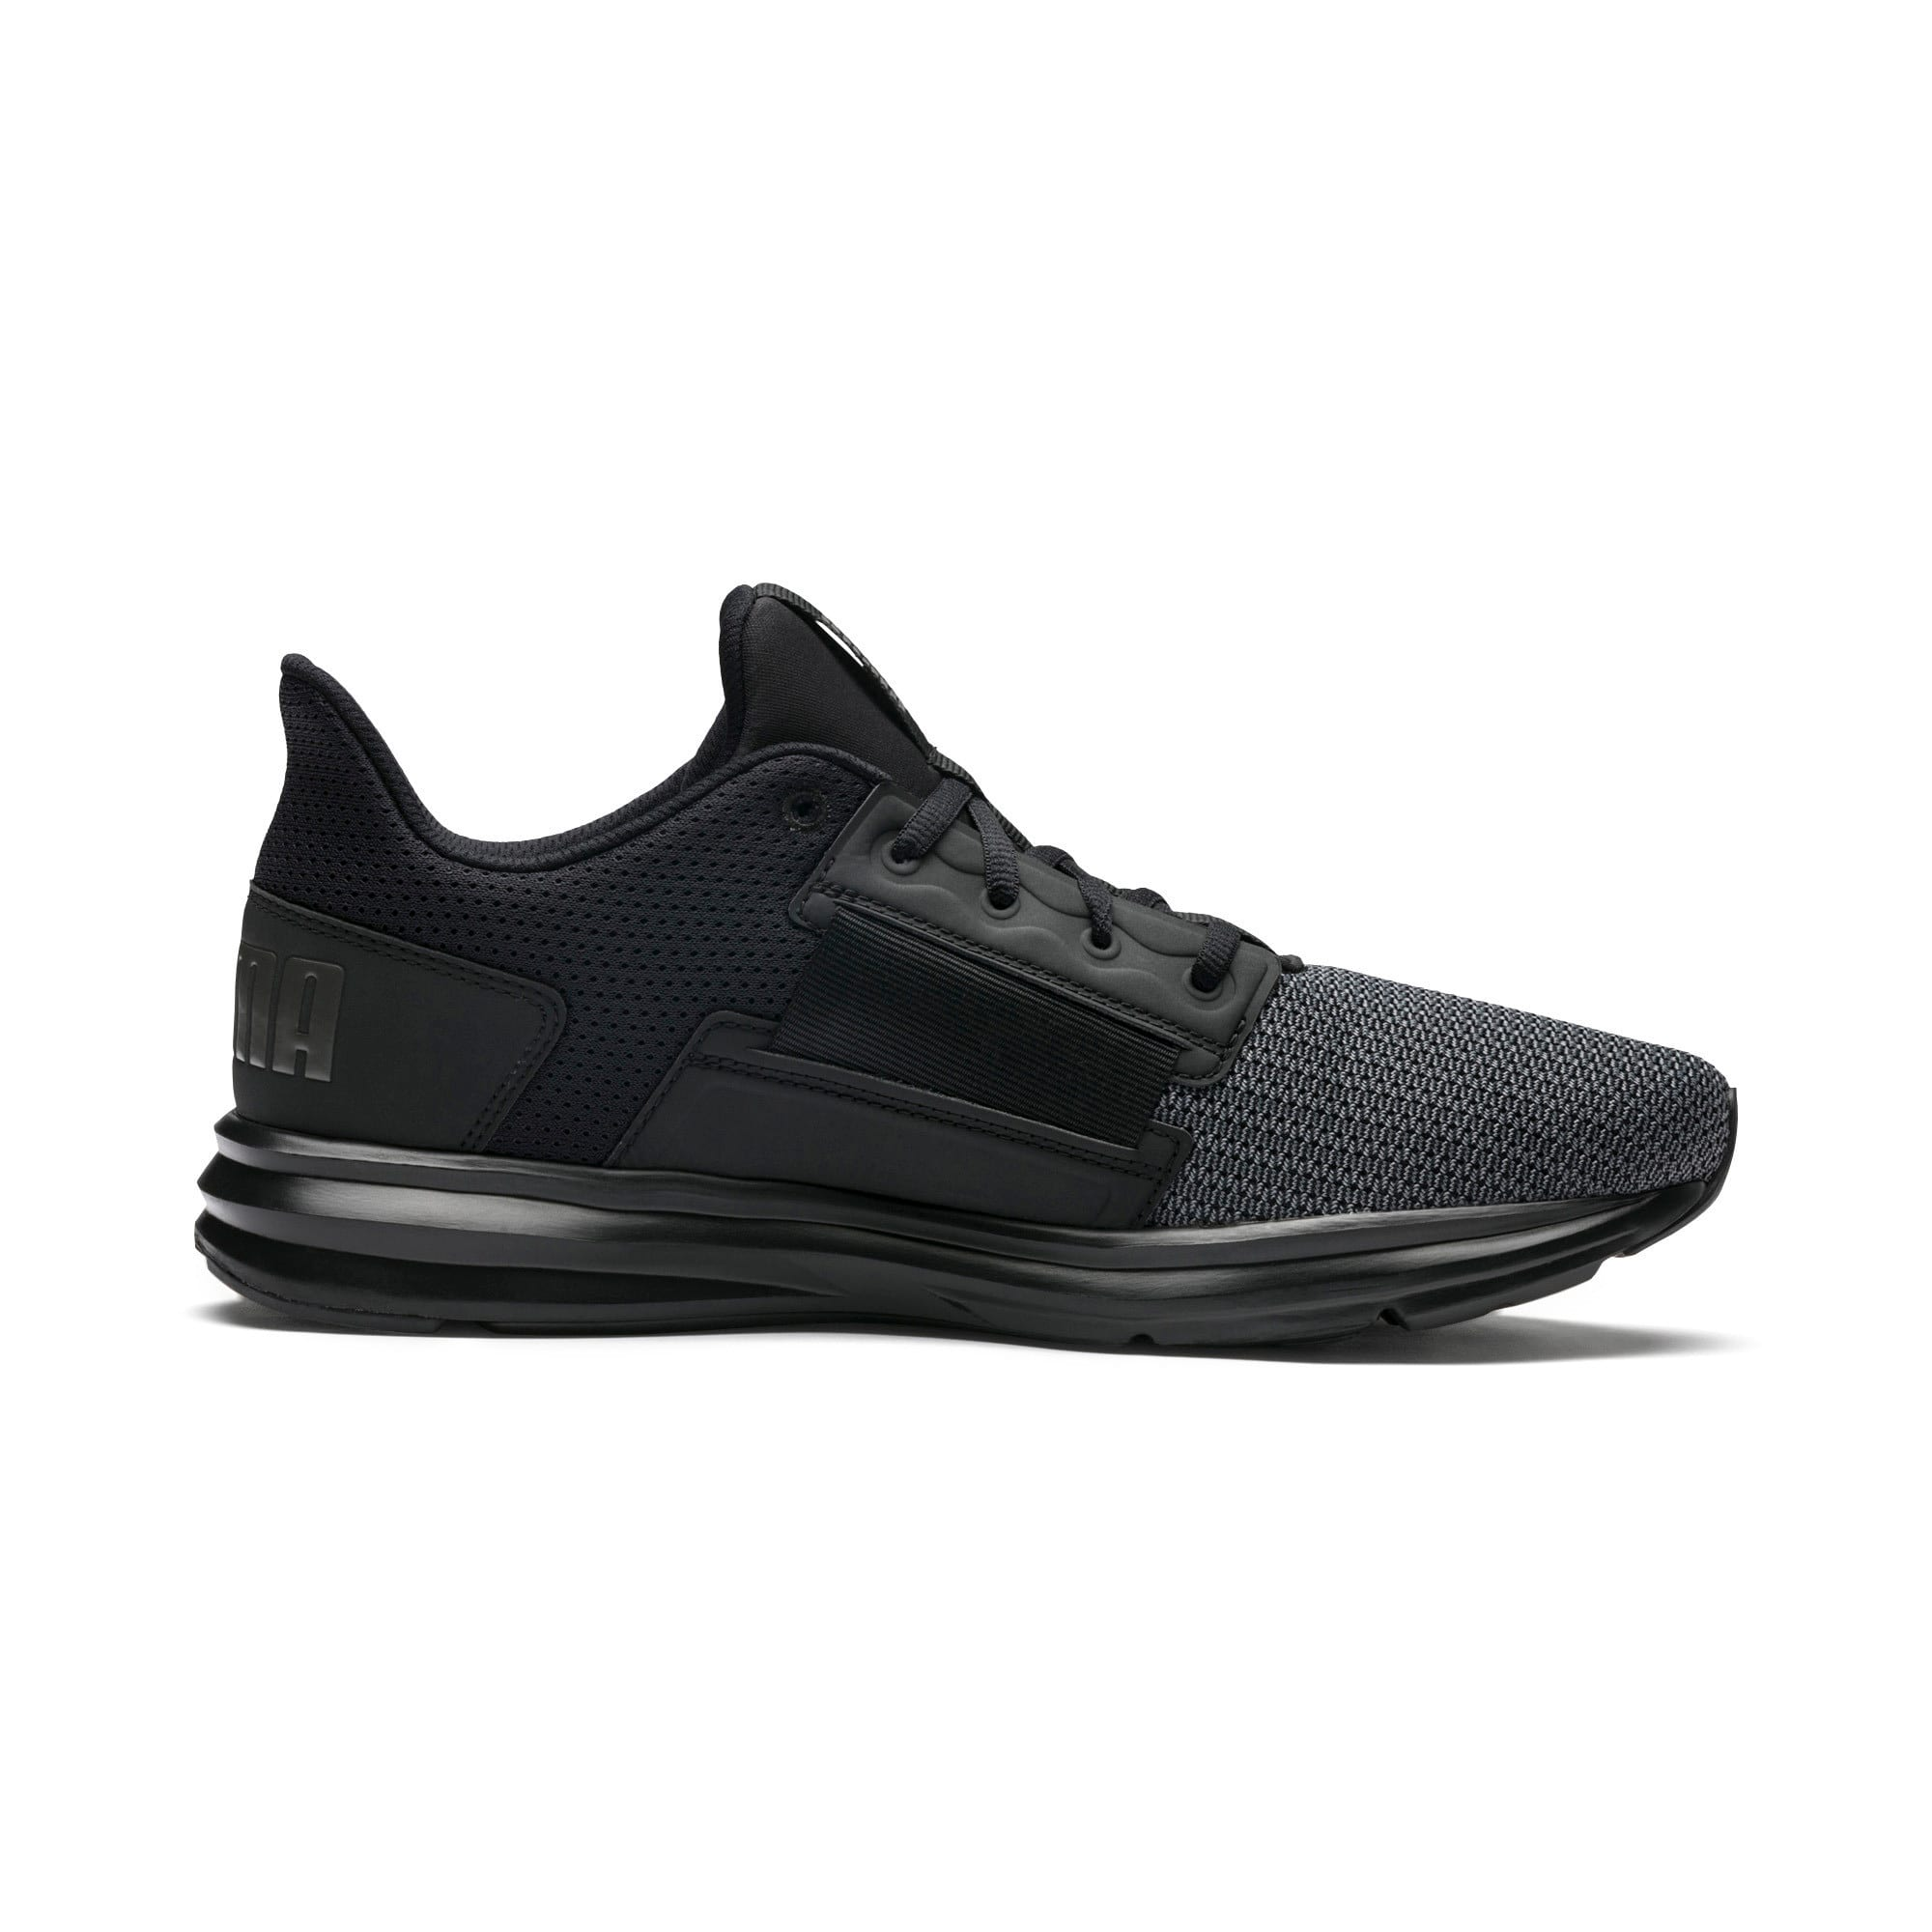 Thumbnail 5 of Enzo Street Men's Running Shoes, Black-Iron Gate-Aged Silver, medium-IND